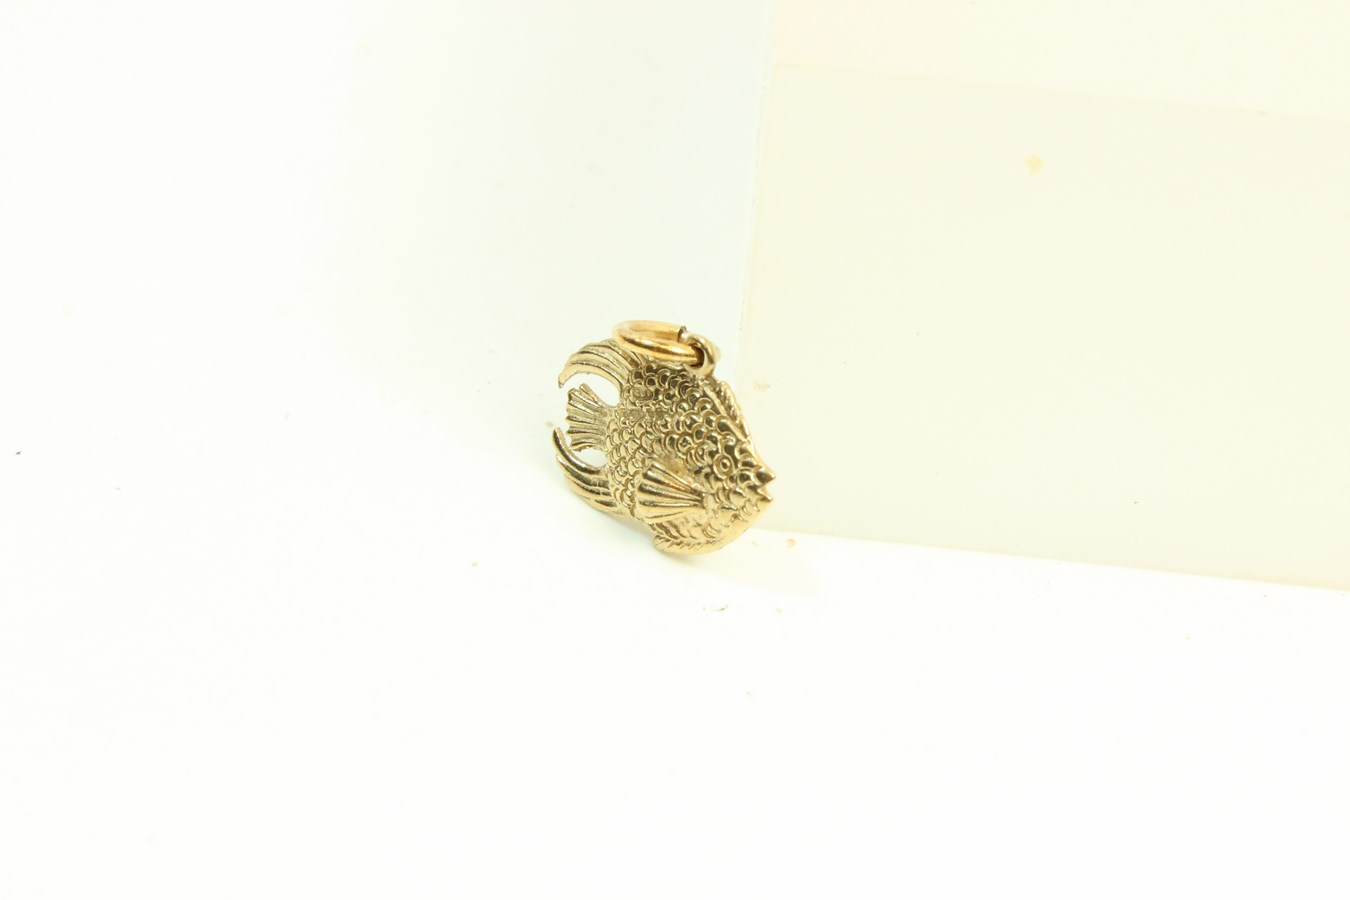 9ct gold solid charm fish for Solid gold fish